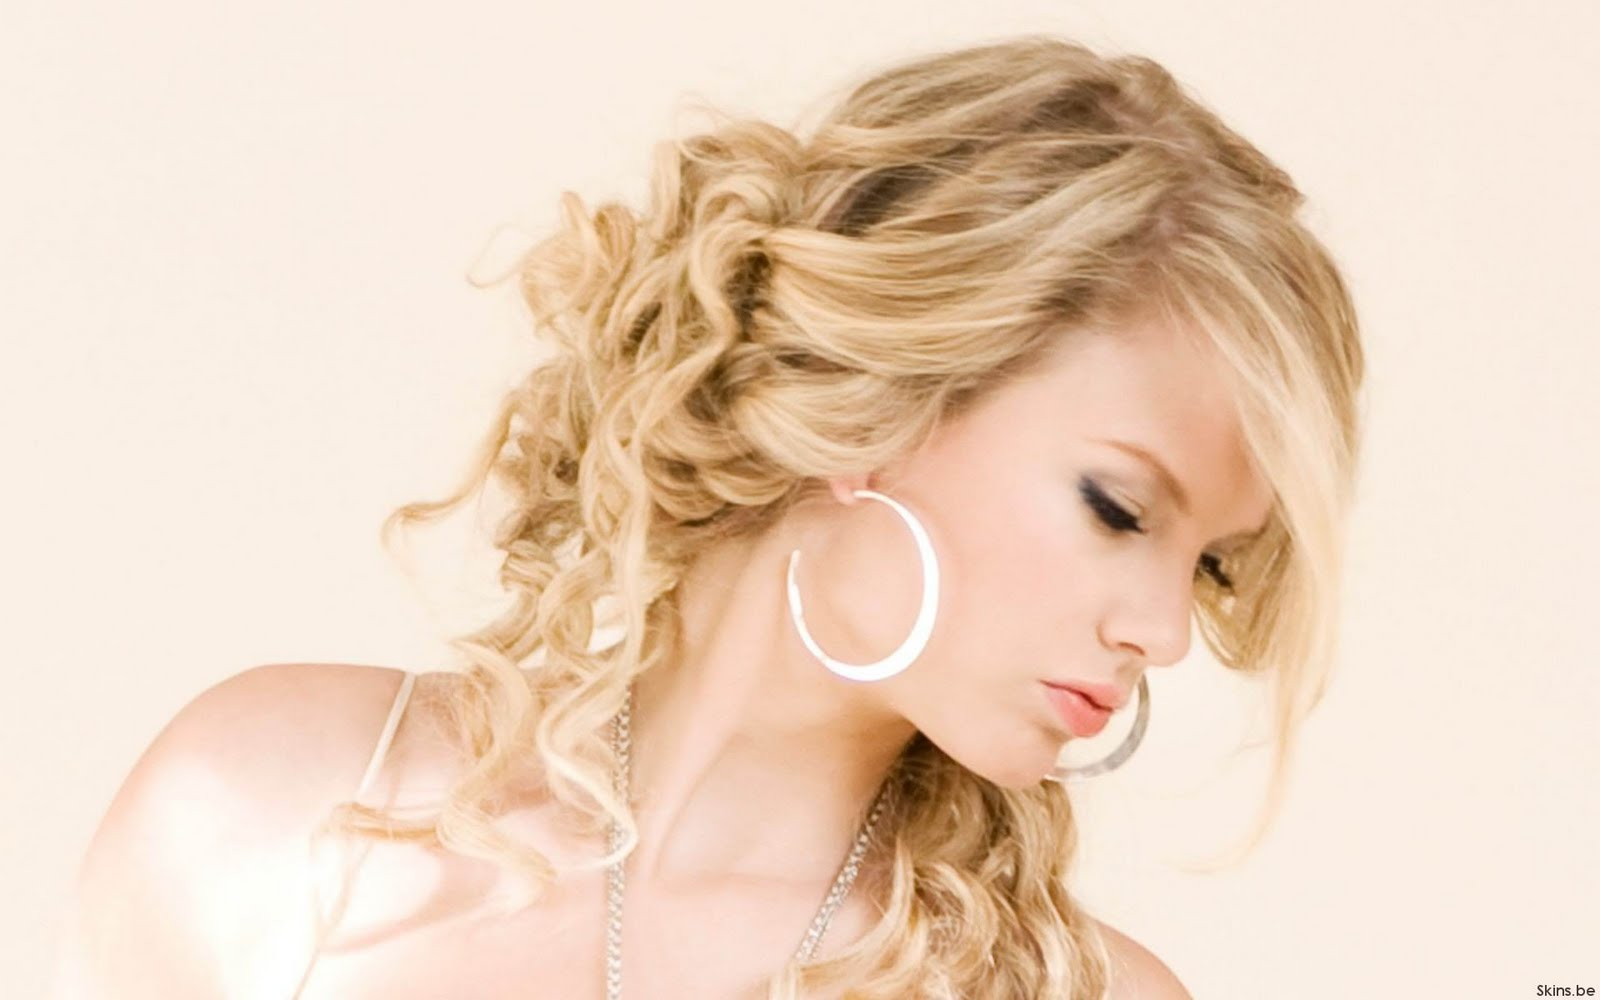 Taylor swift our song curly hair